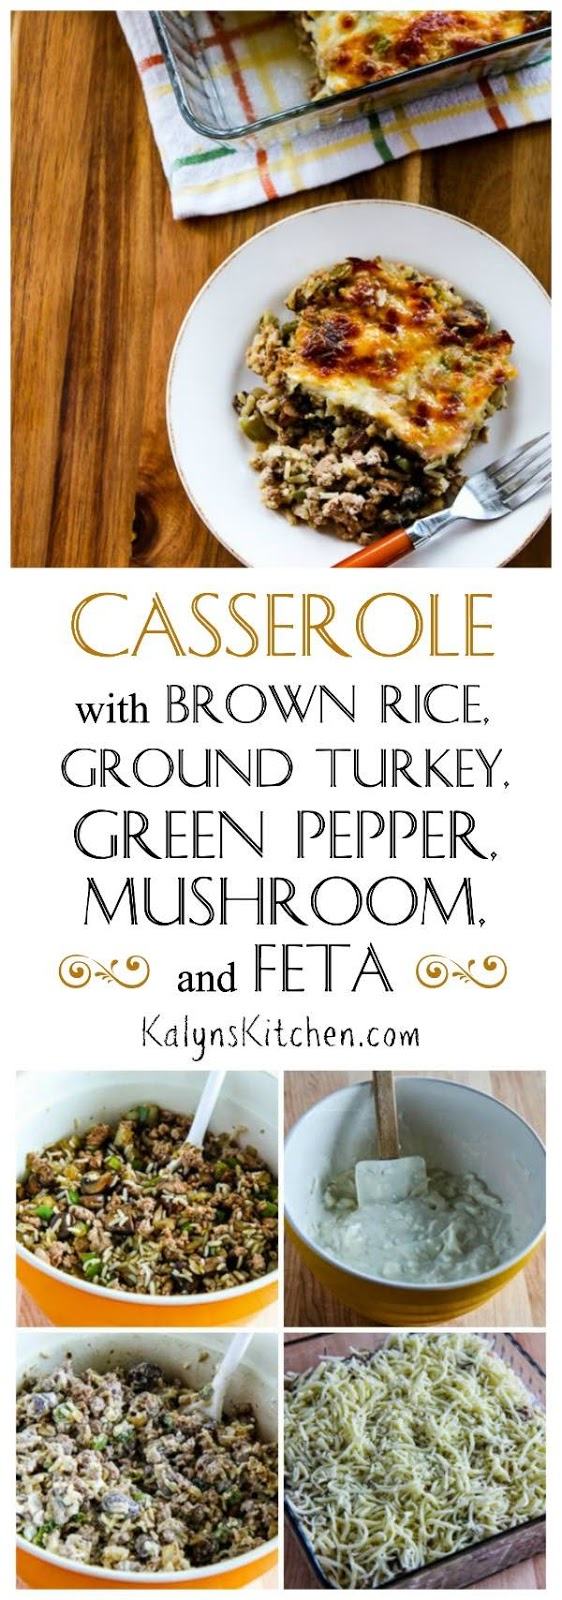 Casserole with Brown Rice, Ground Turkey, Green Pepper, Mushrooms, and ...